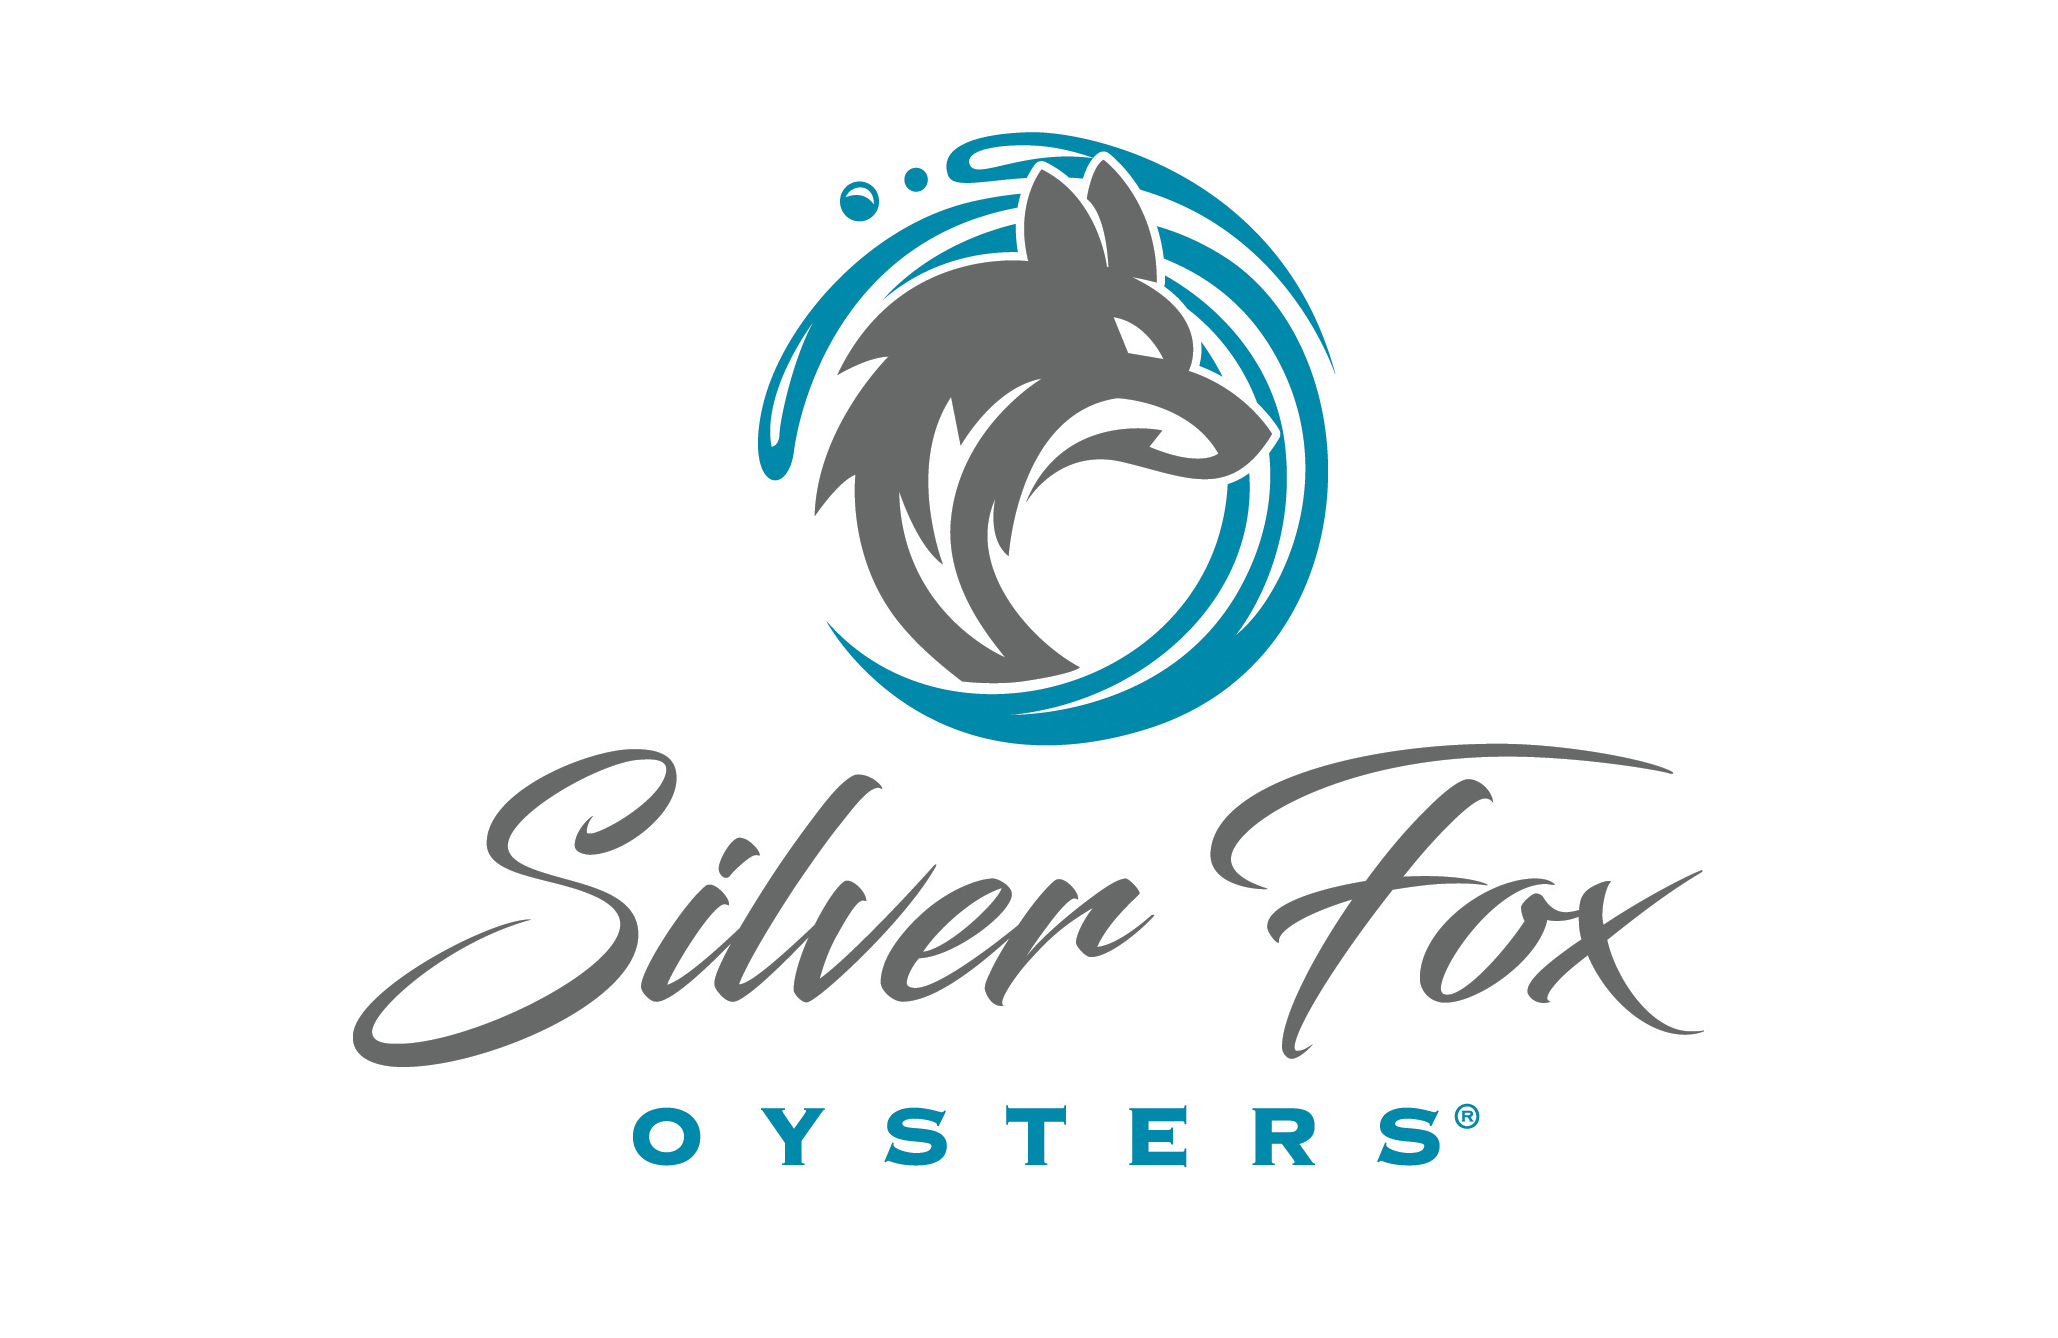 Silver Fox Oysters Logo and Branding